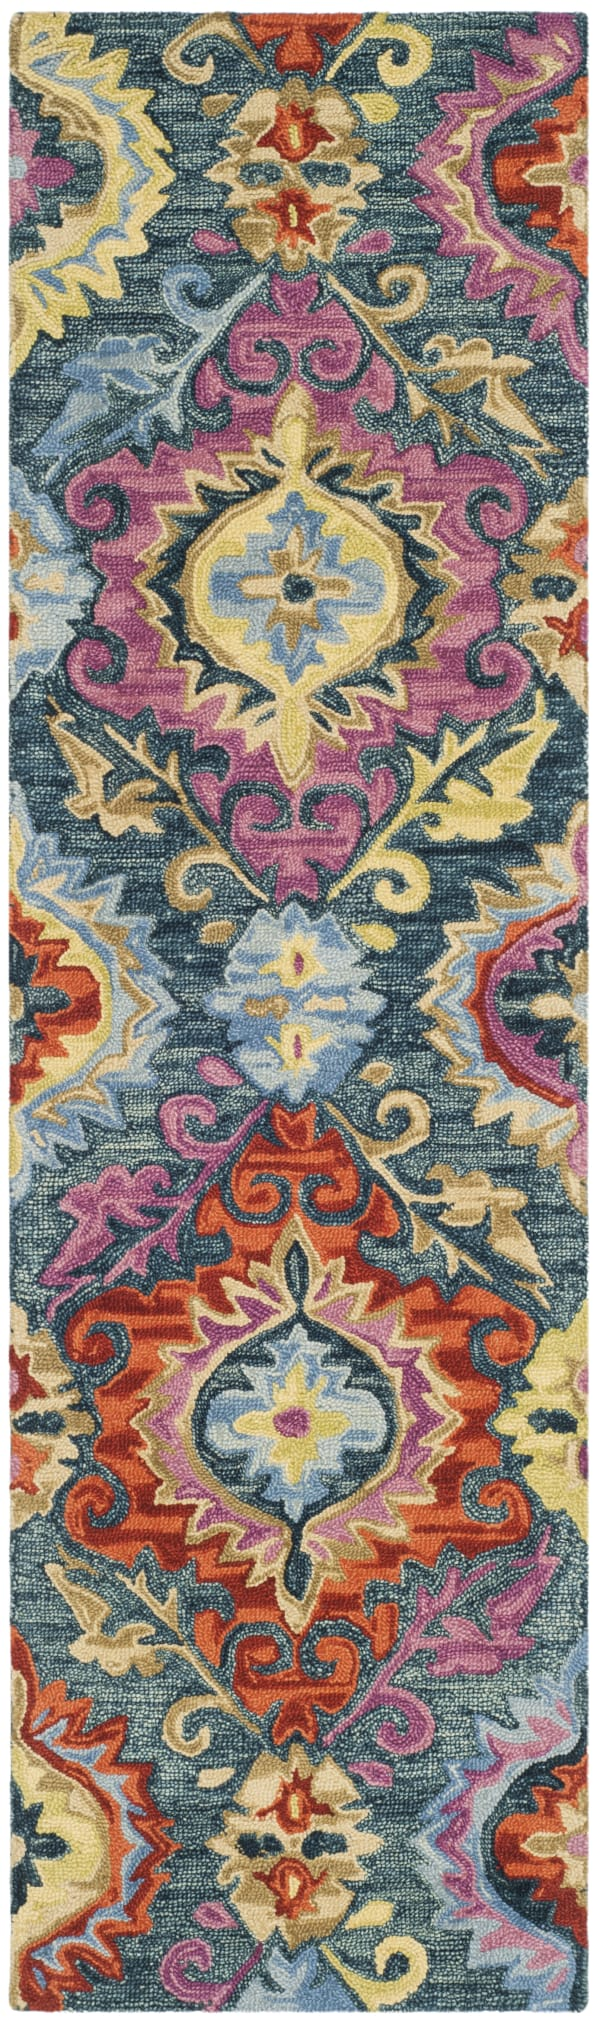 Safavieh Multicolored Wool Rug